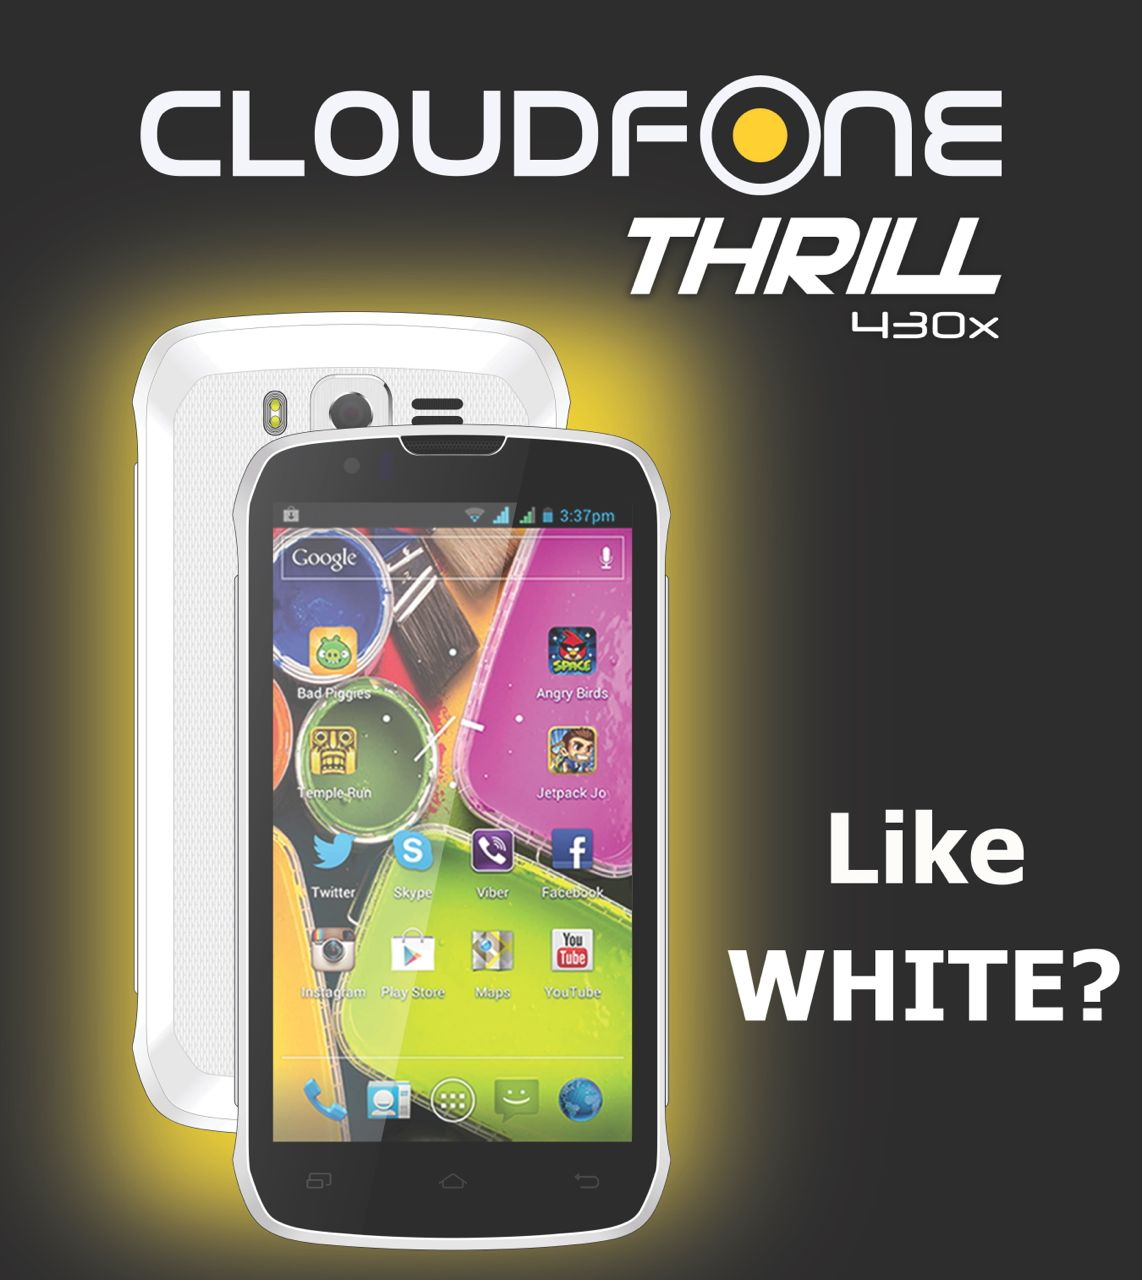 cloudfone thrill 430x white